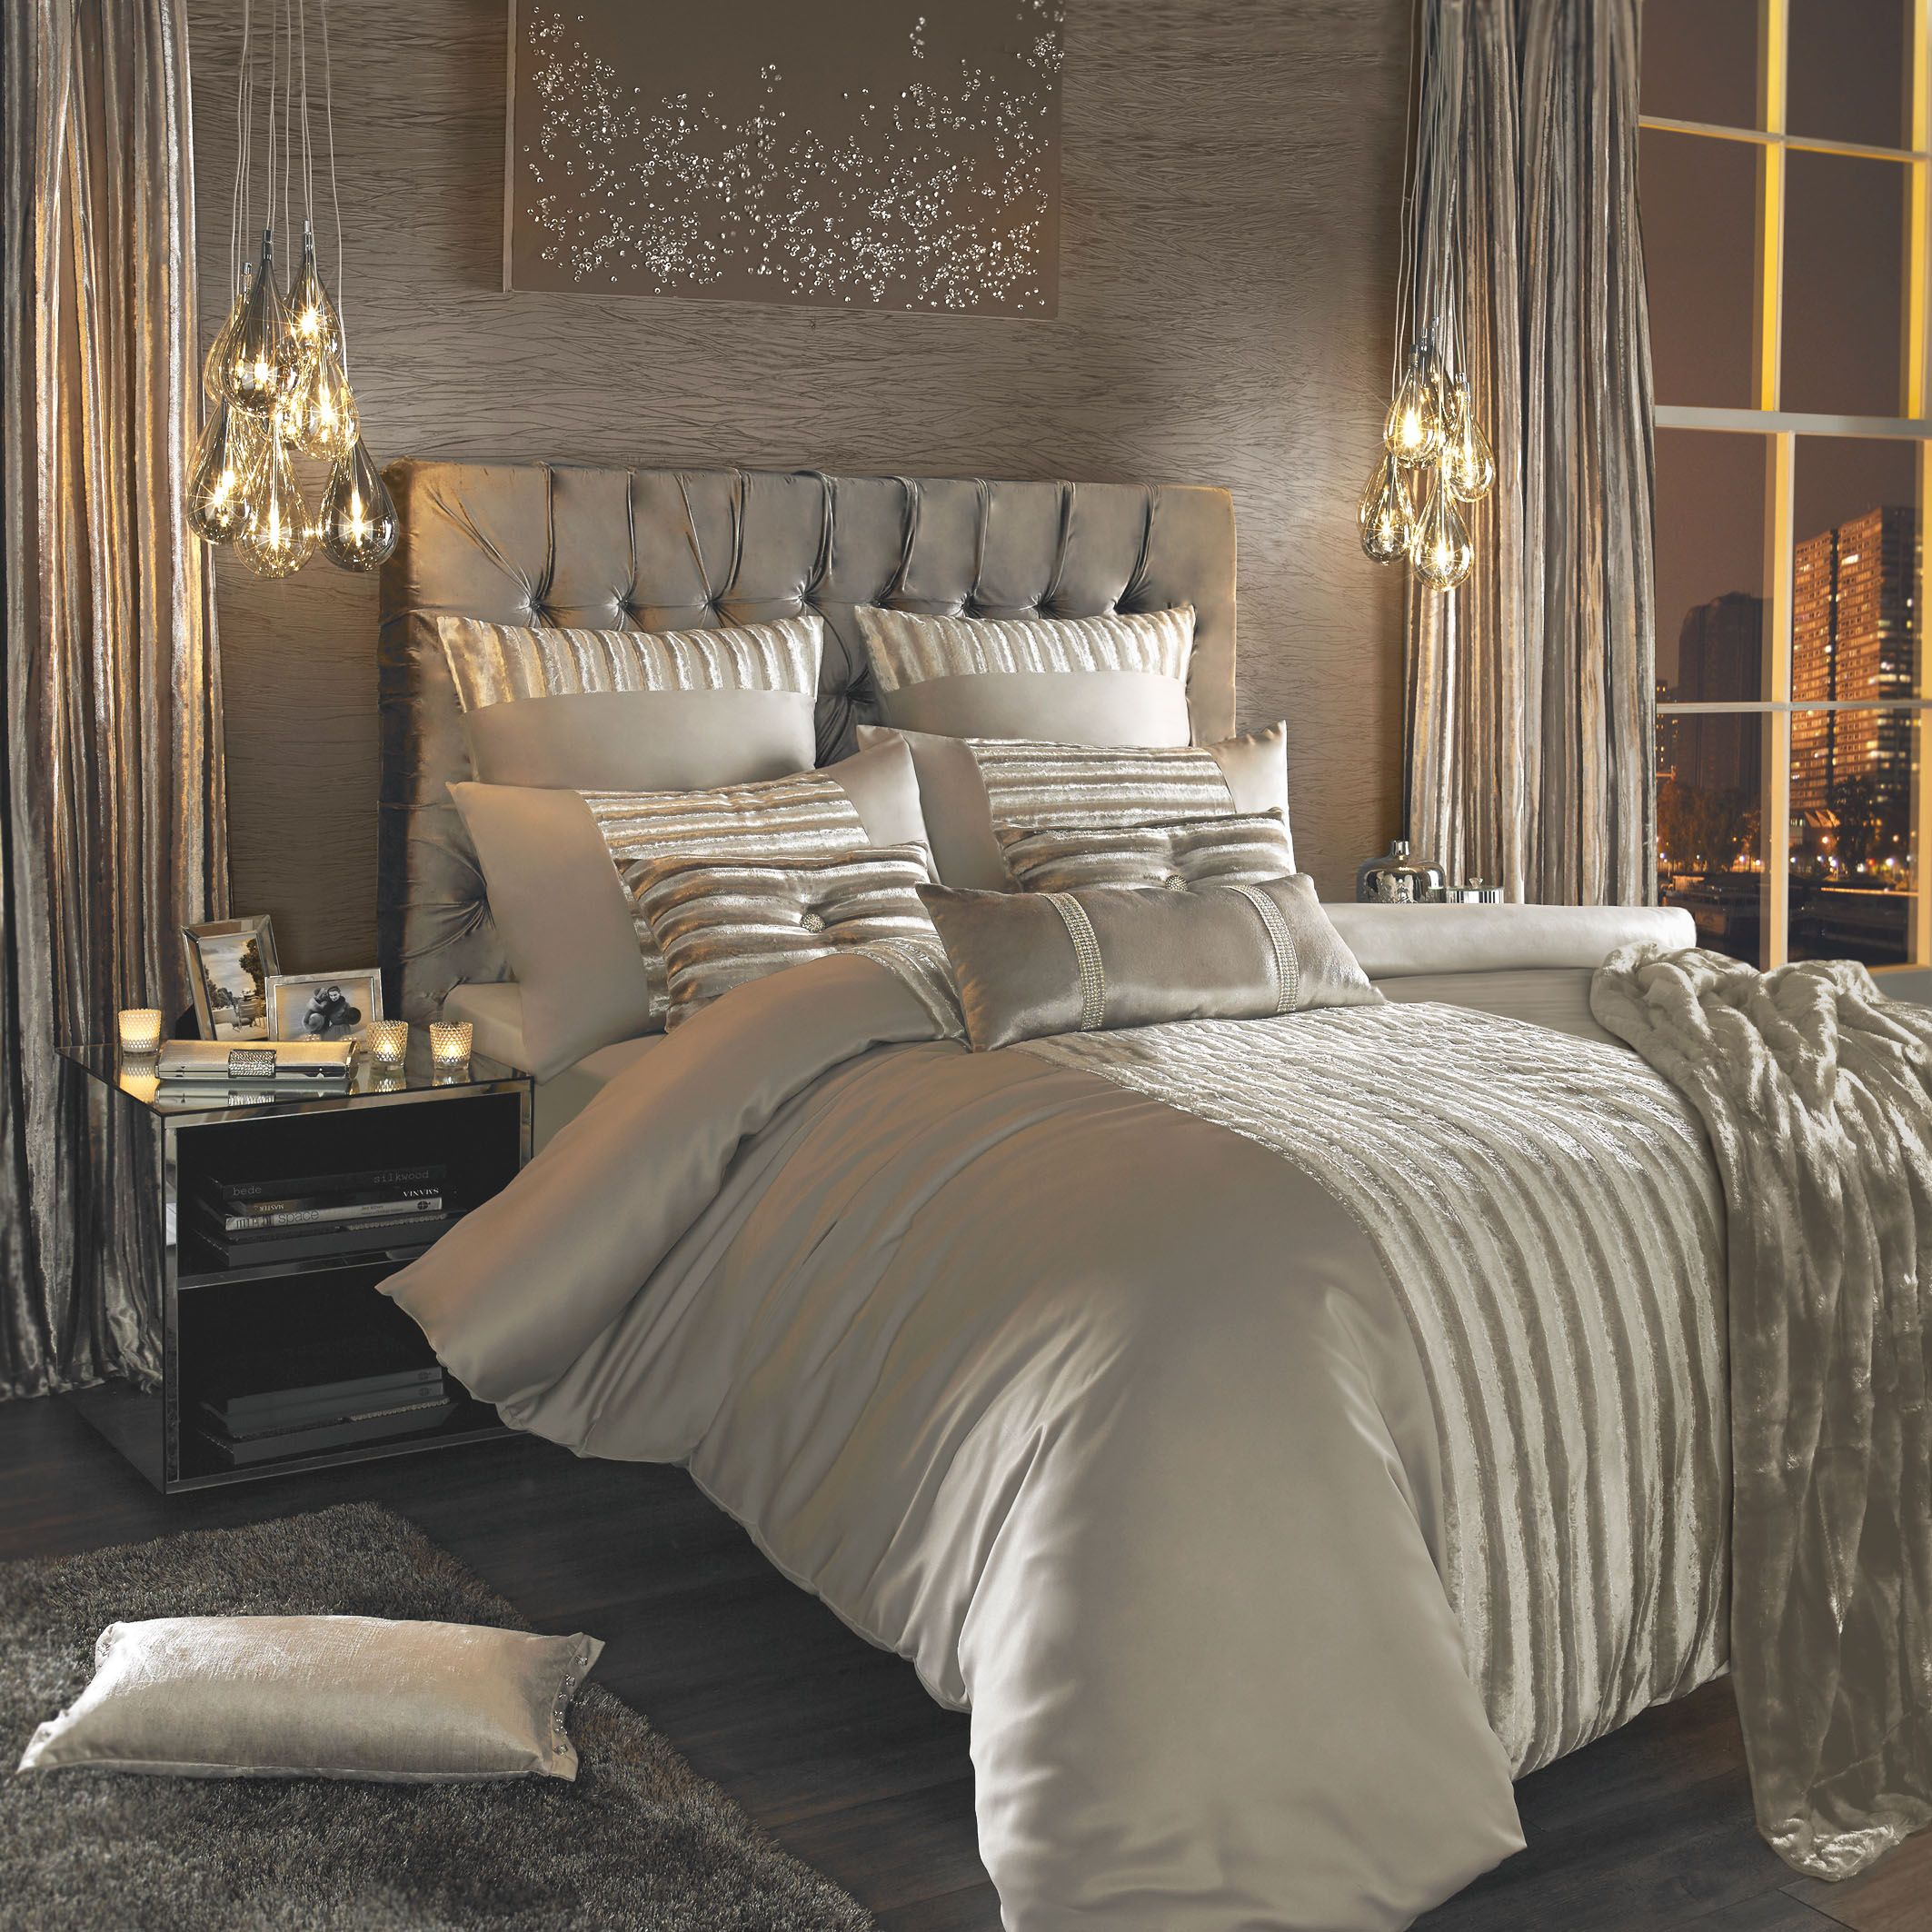 die besten 25 kylie minogue curtains ideen auf pinterest kylie minogue haare silberne. Black Bedroom Furniture Sets. Home Design Ideas